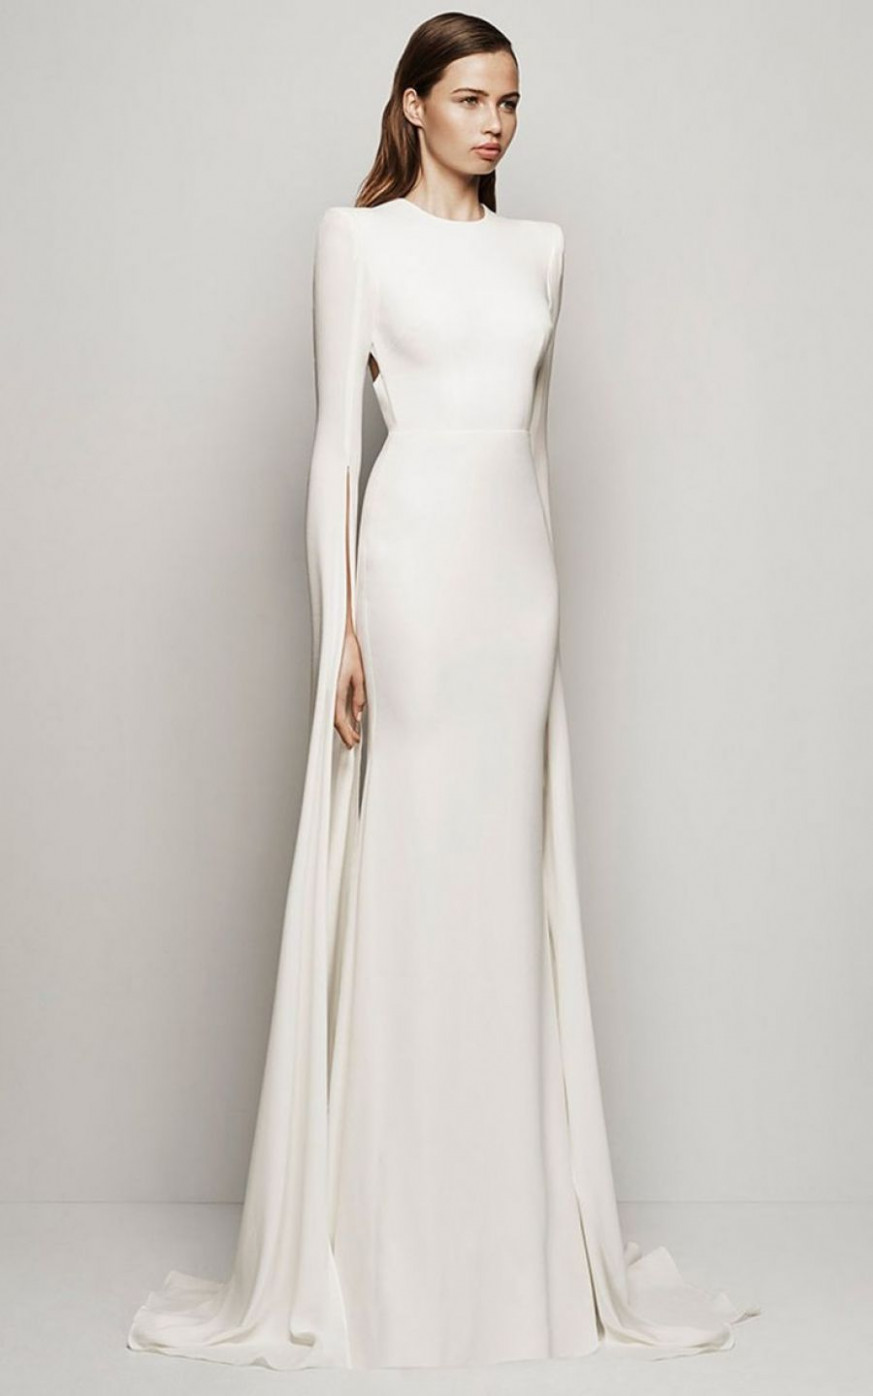 12 chic silhouettes for a classic bride / wedding style chic kleider